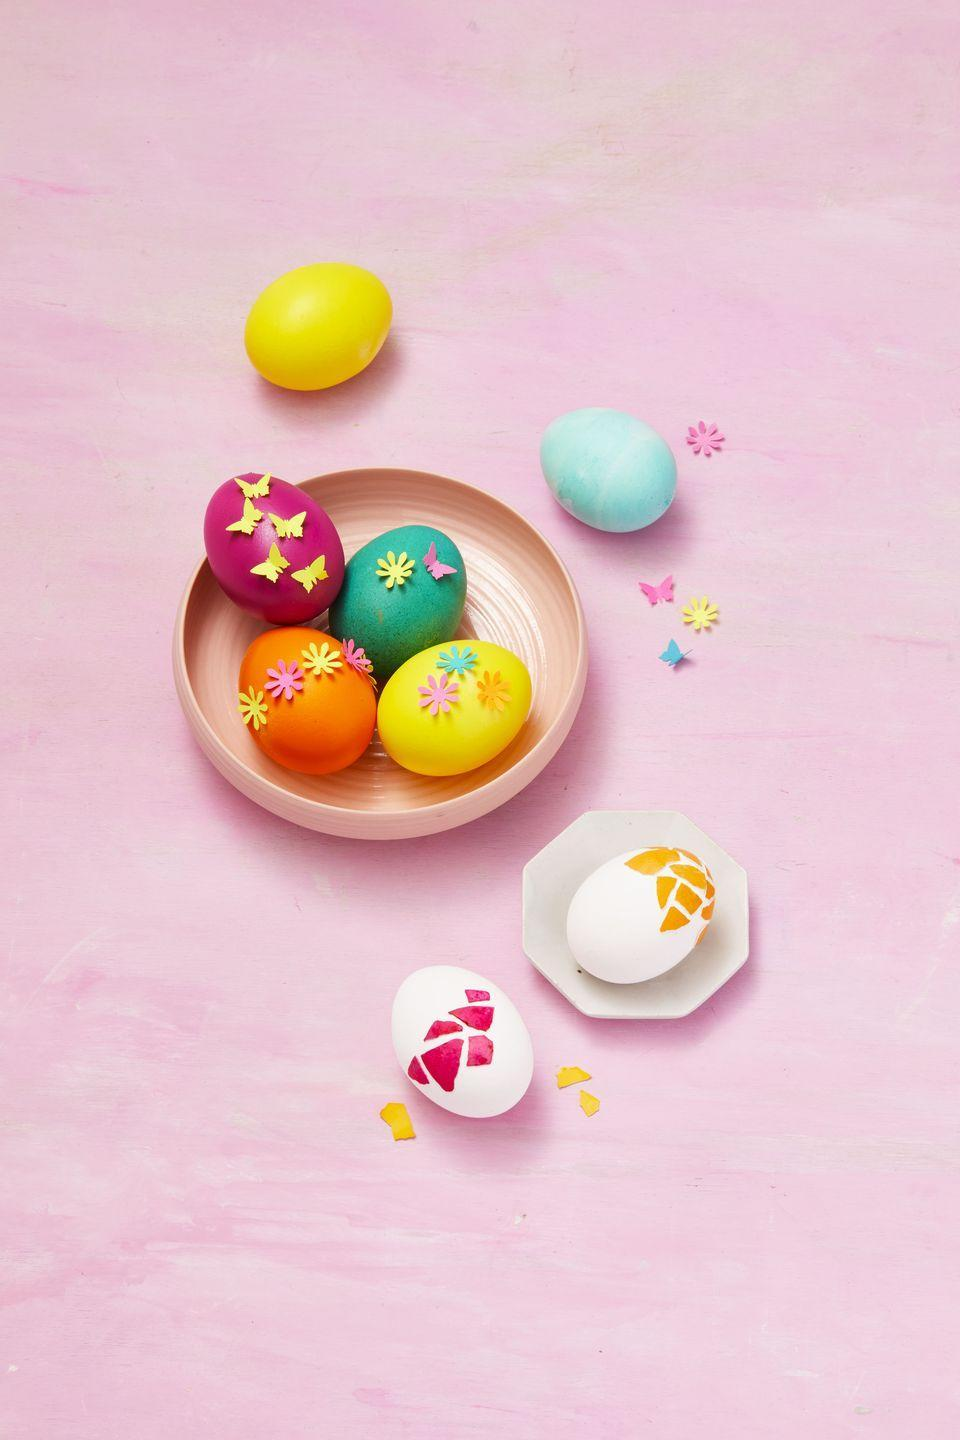 <p>Accidentally break one of your beautifully dyed eggs? Don't stress! Using craft glue, attach the broken pieces onto a plain egg in an artsy mosaic motif.<br></p>